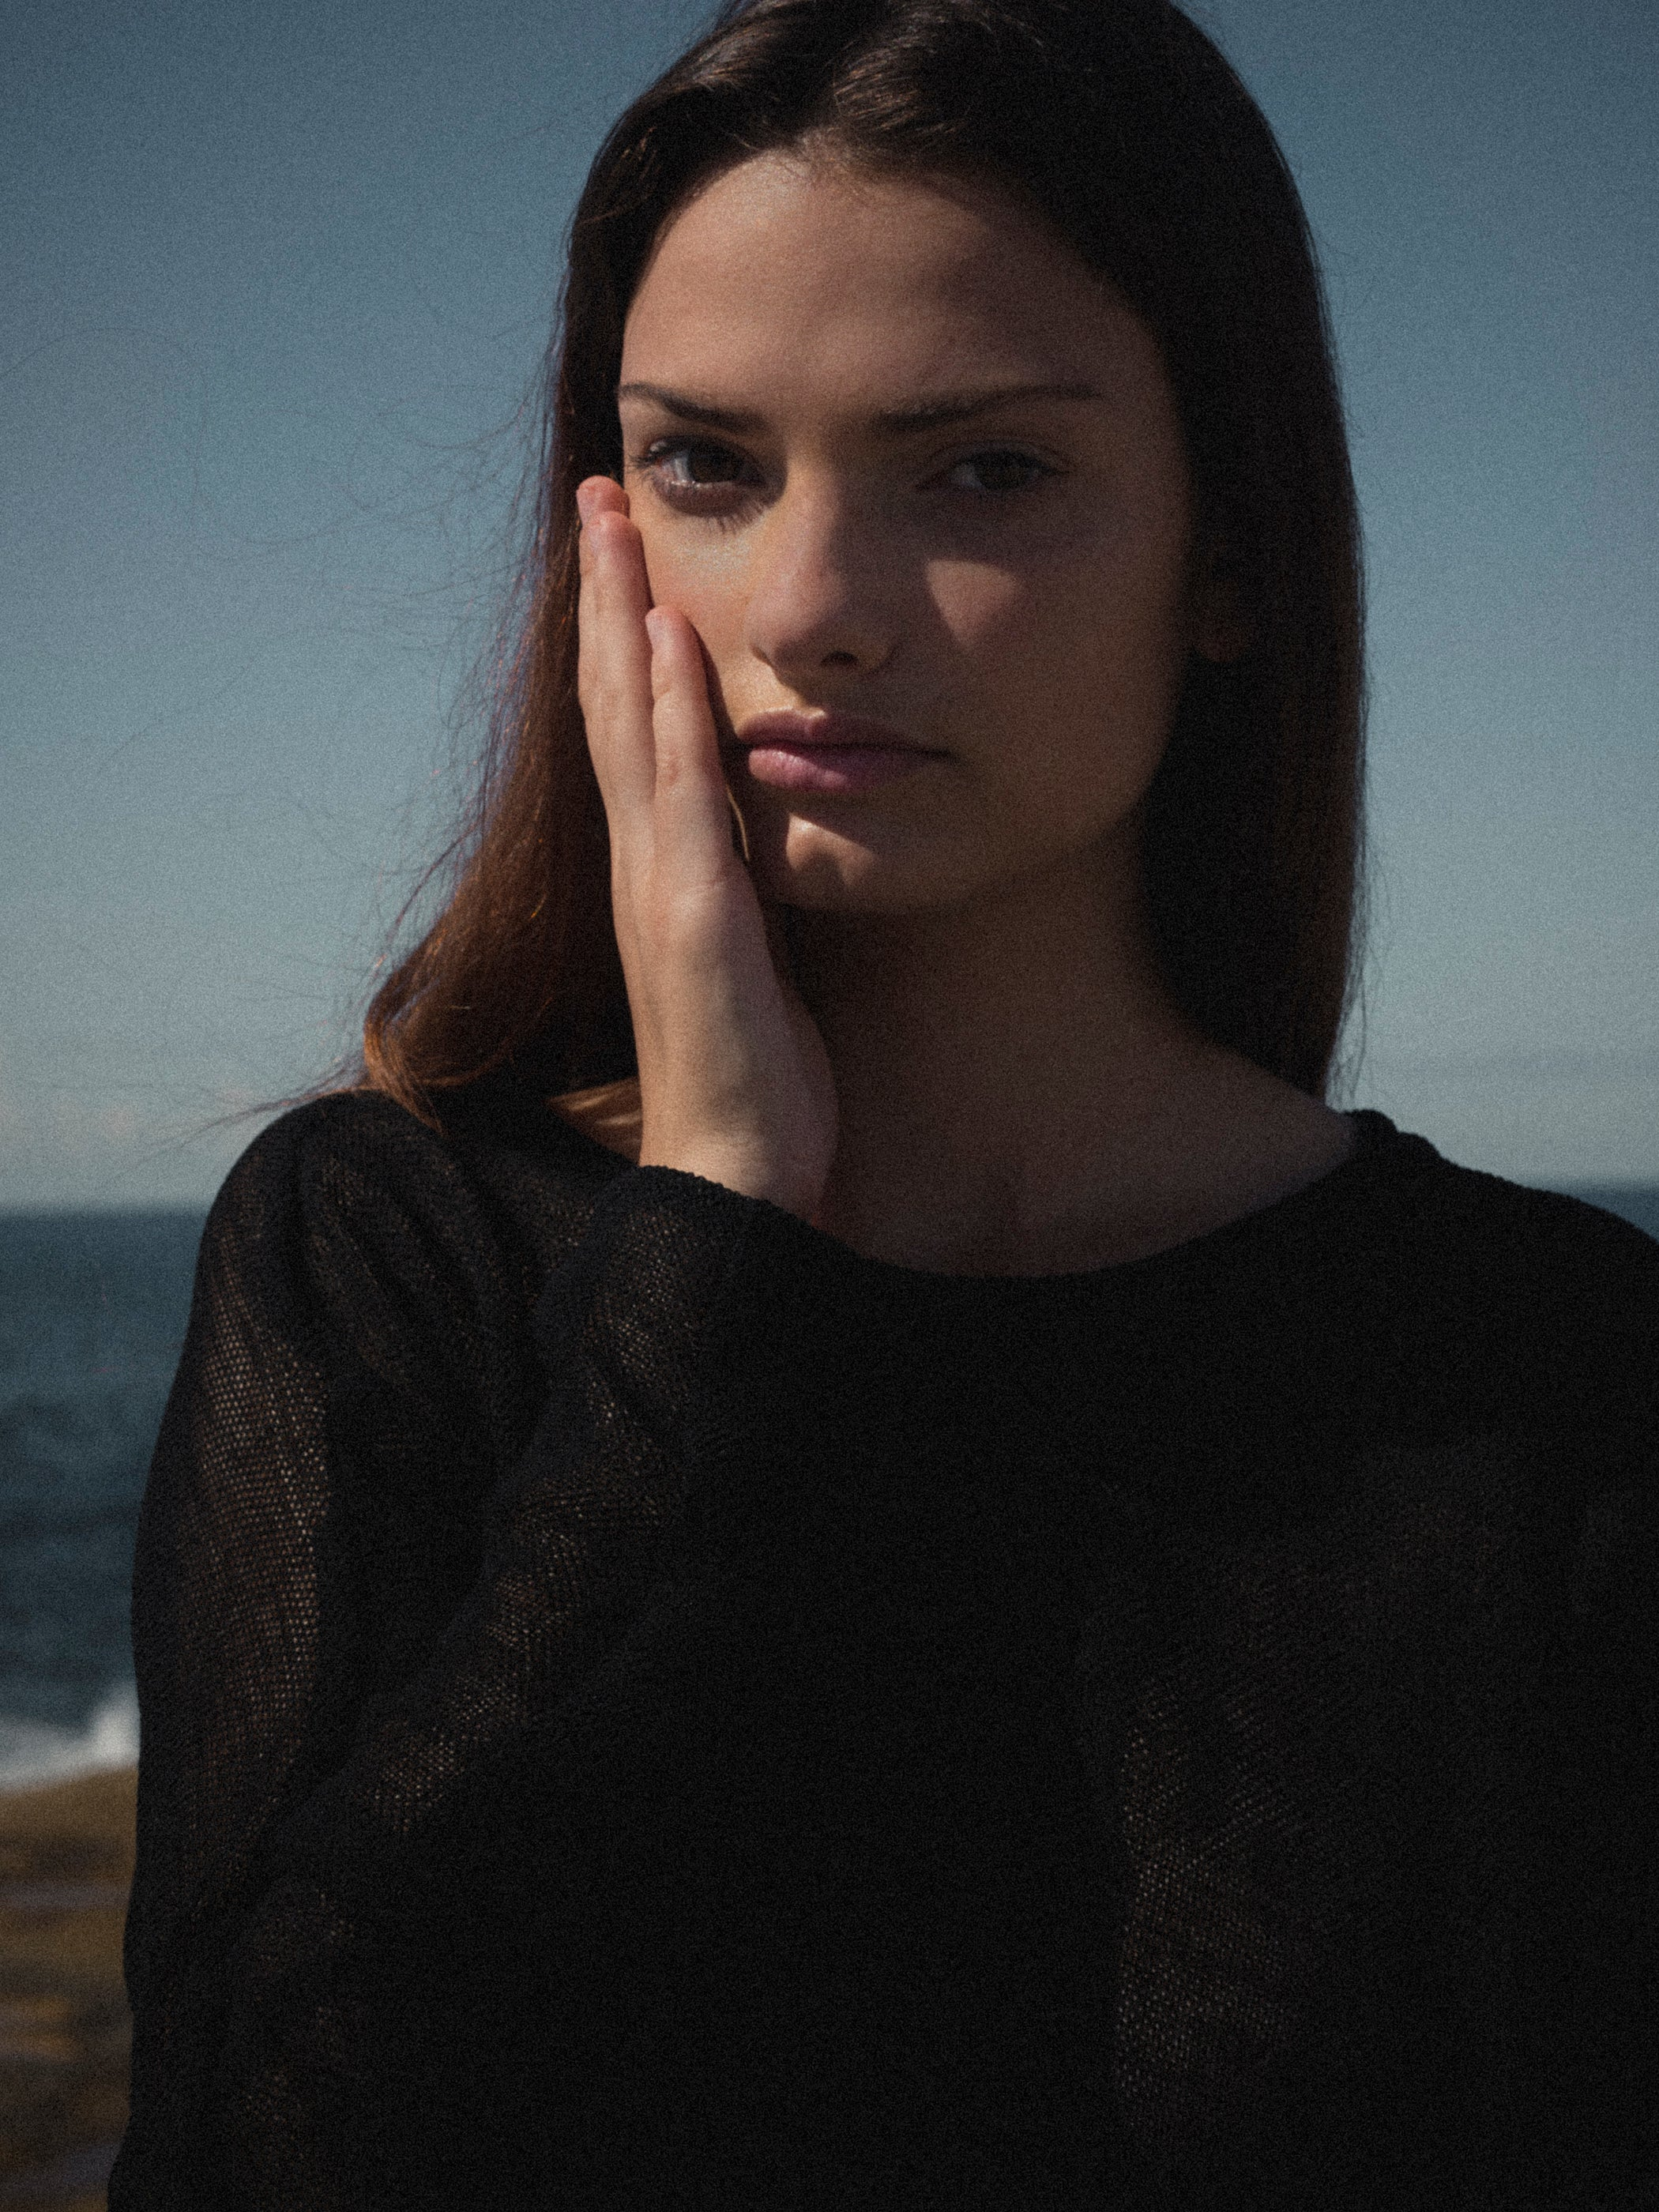 Model holding her hand onto her face